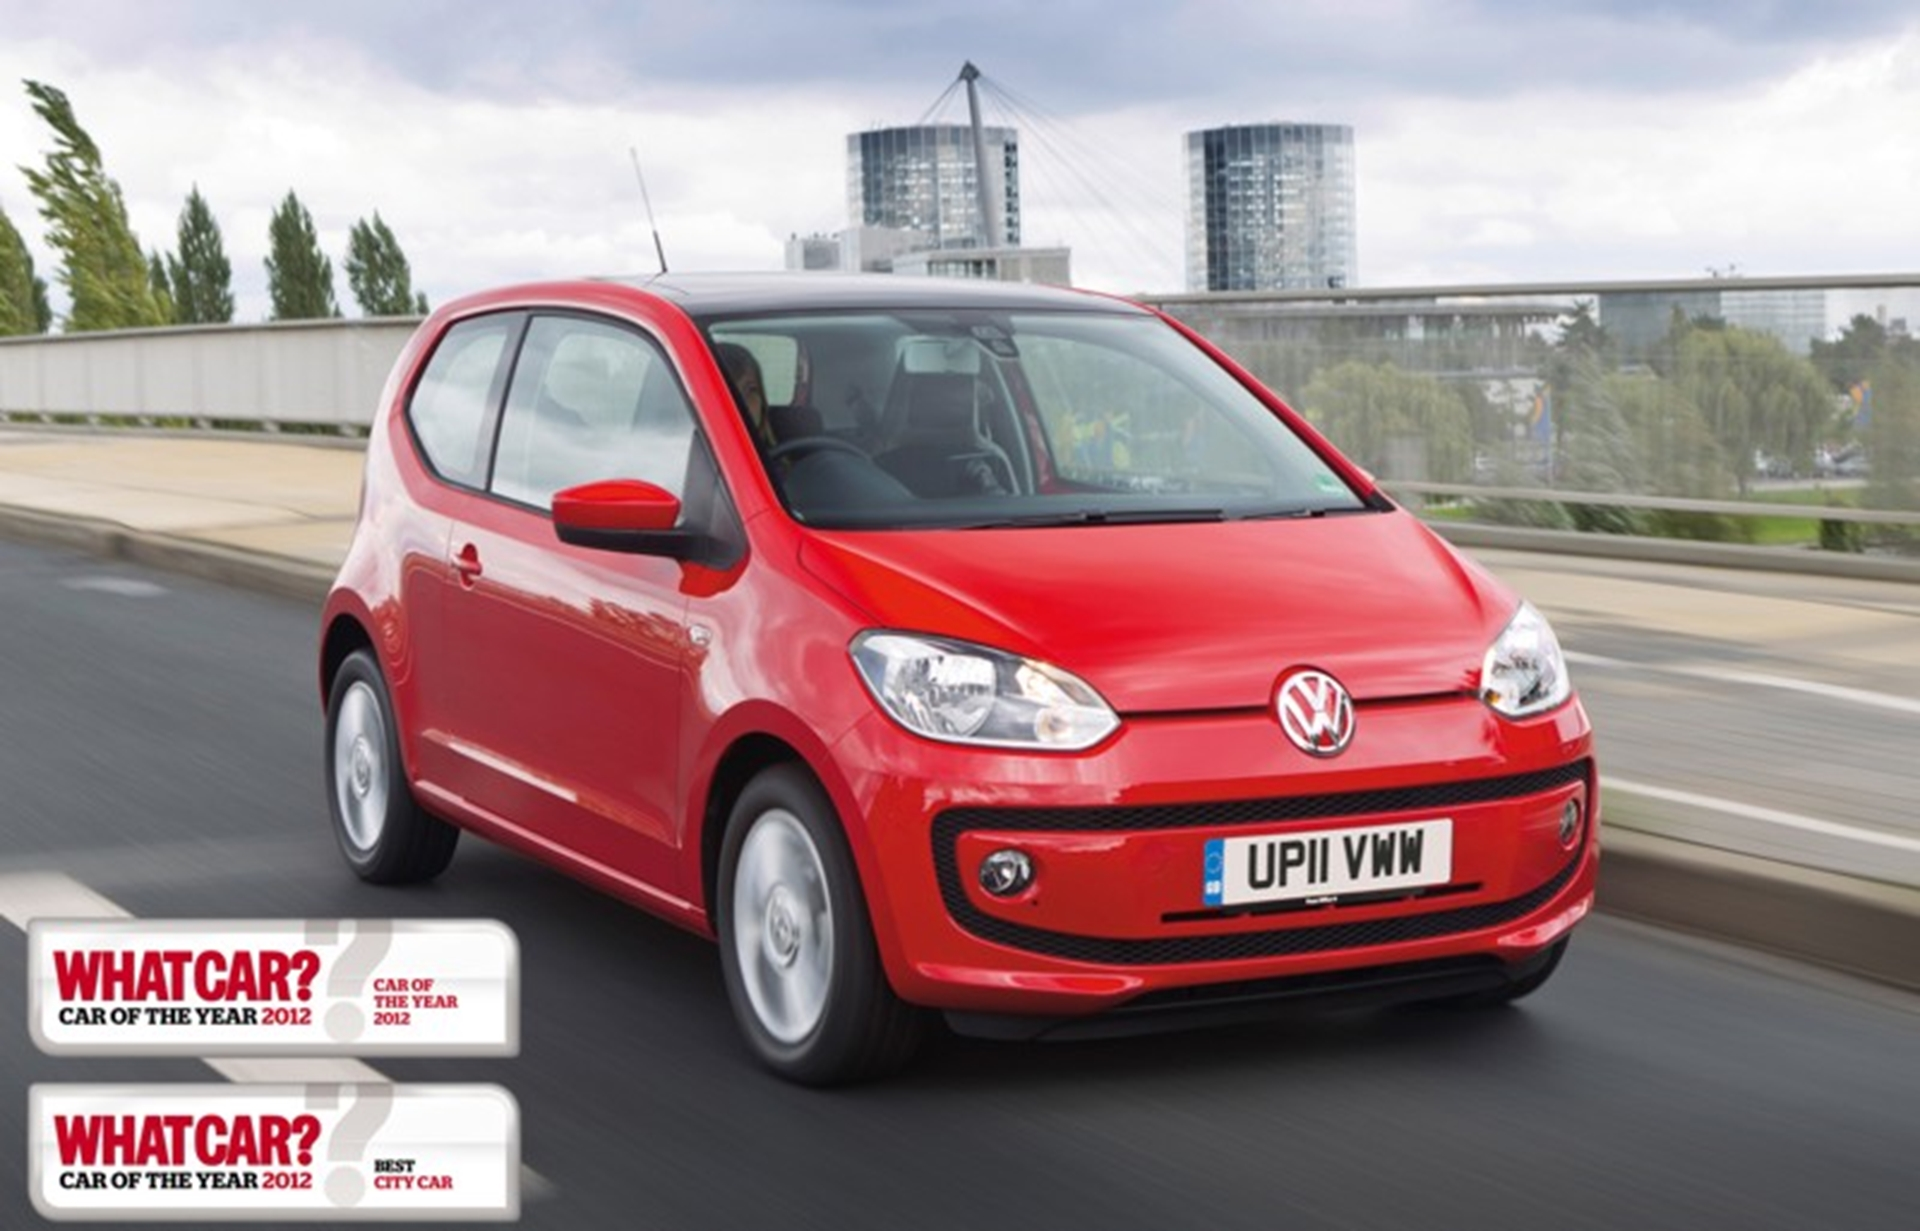 Volkswagen up! named What Car? Car of the Year 2012